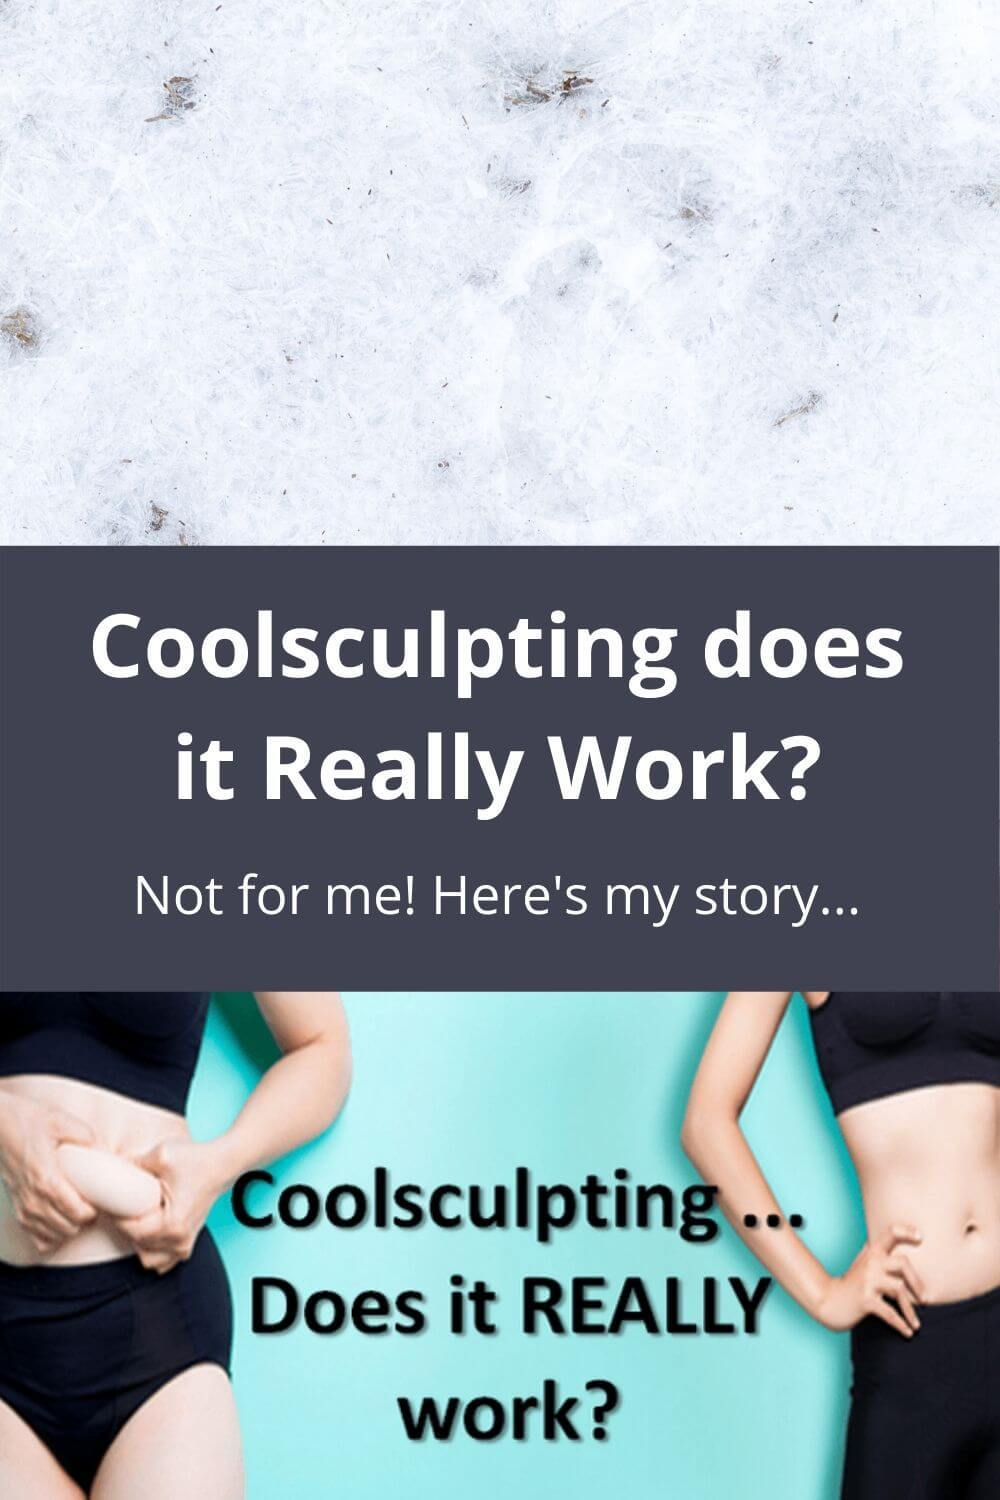 Coolsculpting does it Really Work?